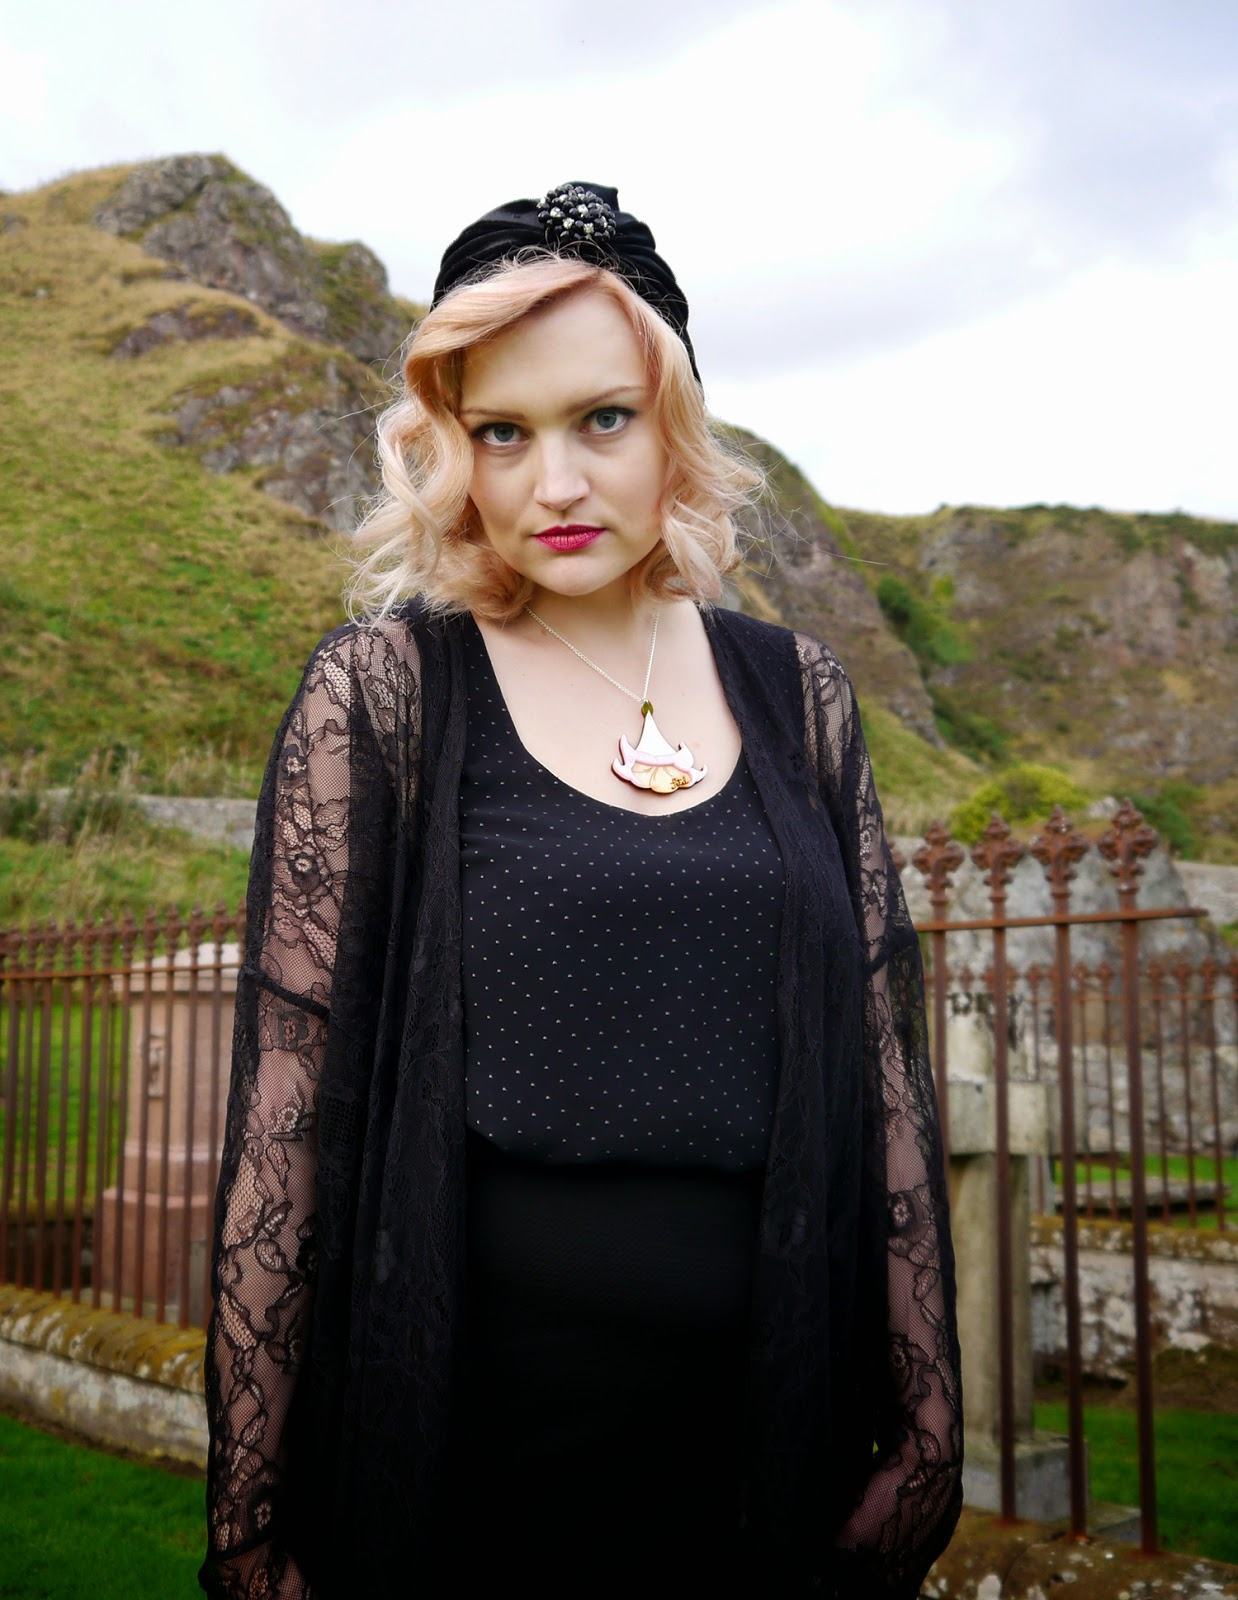 spiritual medium, psychic, the coven, witch, fashion, peach hair, turban, 1920s, flapper, poisonous flowers, scottish bloggers, scotstreetstyle, Kimberley festival, Scotland, graveyard, real ghost